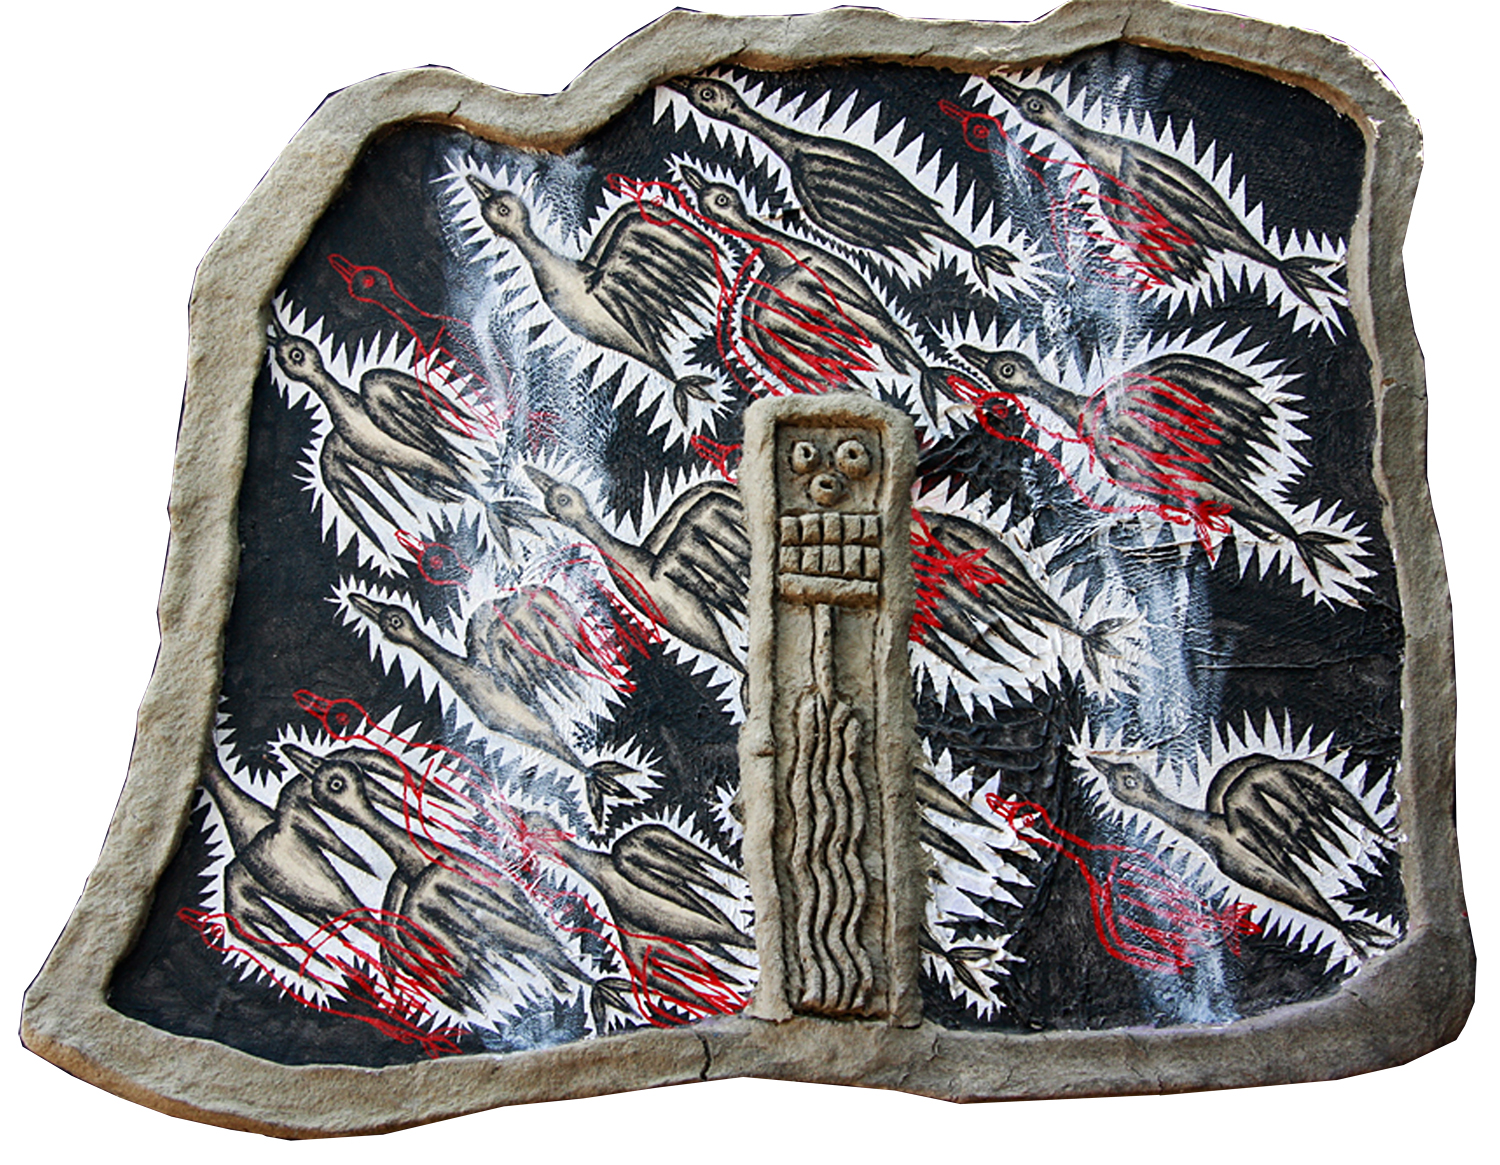 """'flock' ©1991, acrylic, patched canvas, shed boa constrictor skin, canvas, celluclay on wood, approximately 25"""" x 31 1/4""""."""